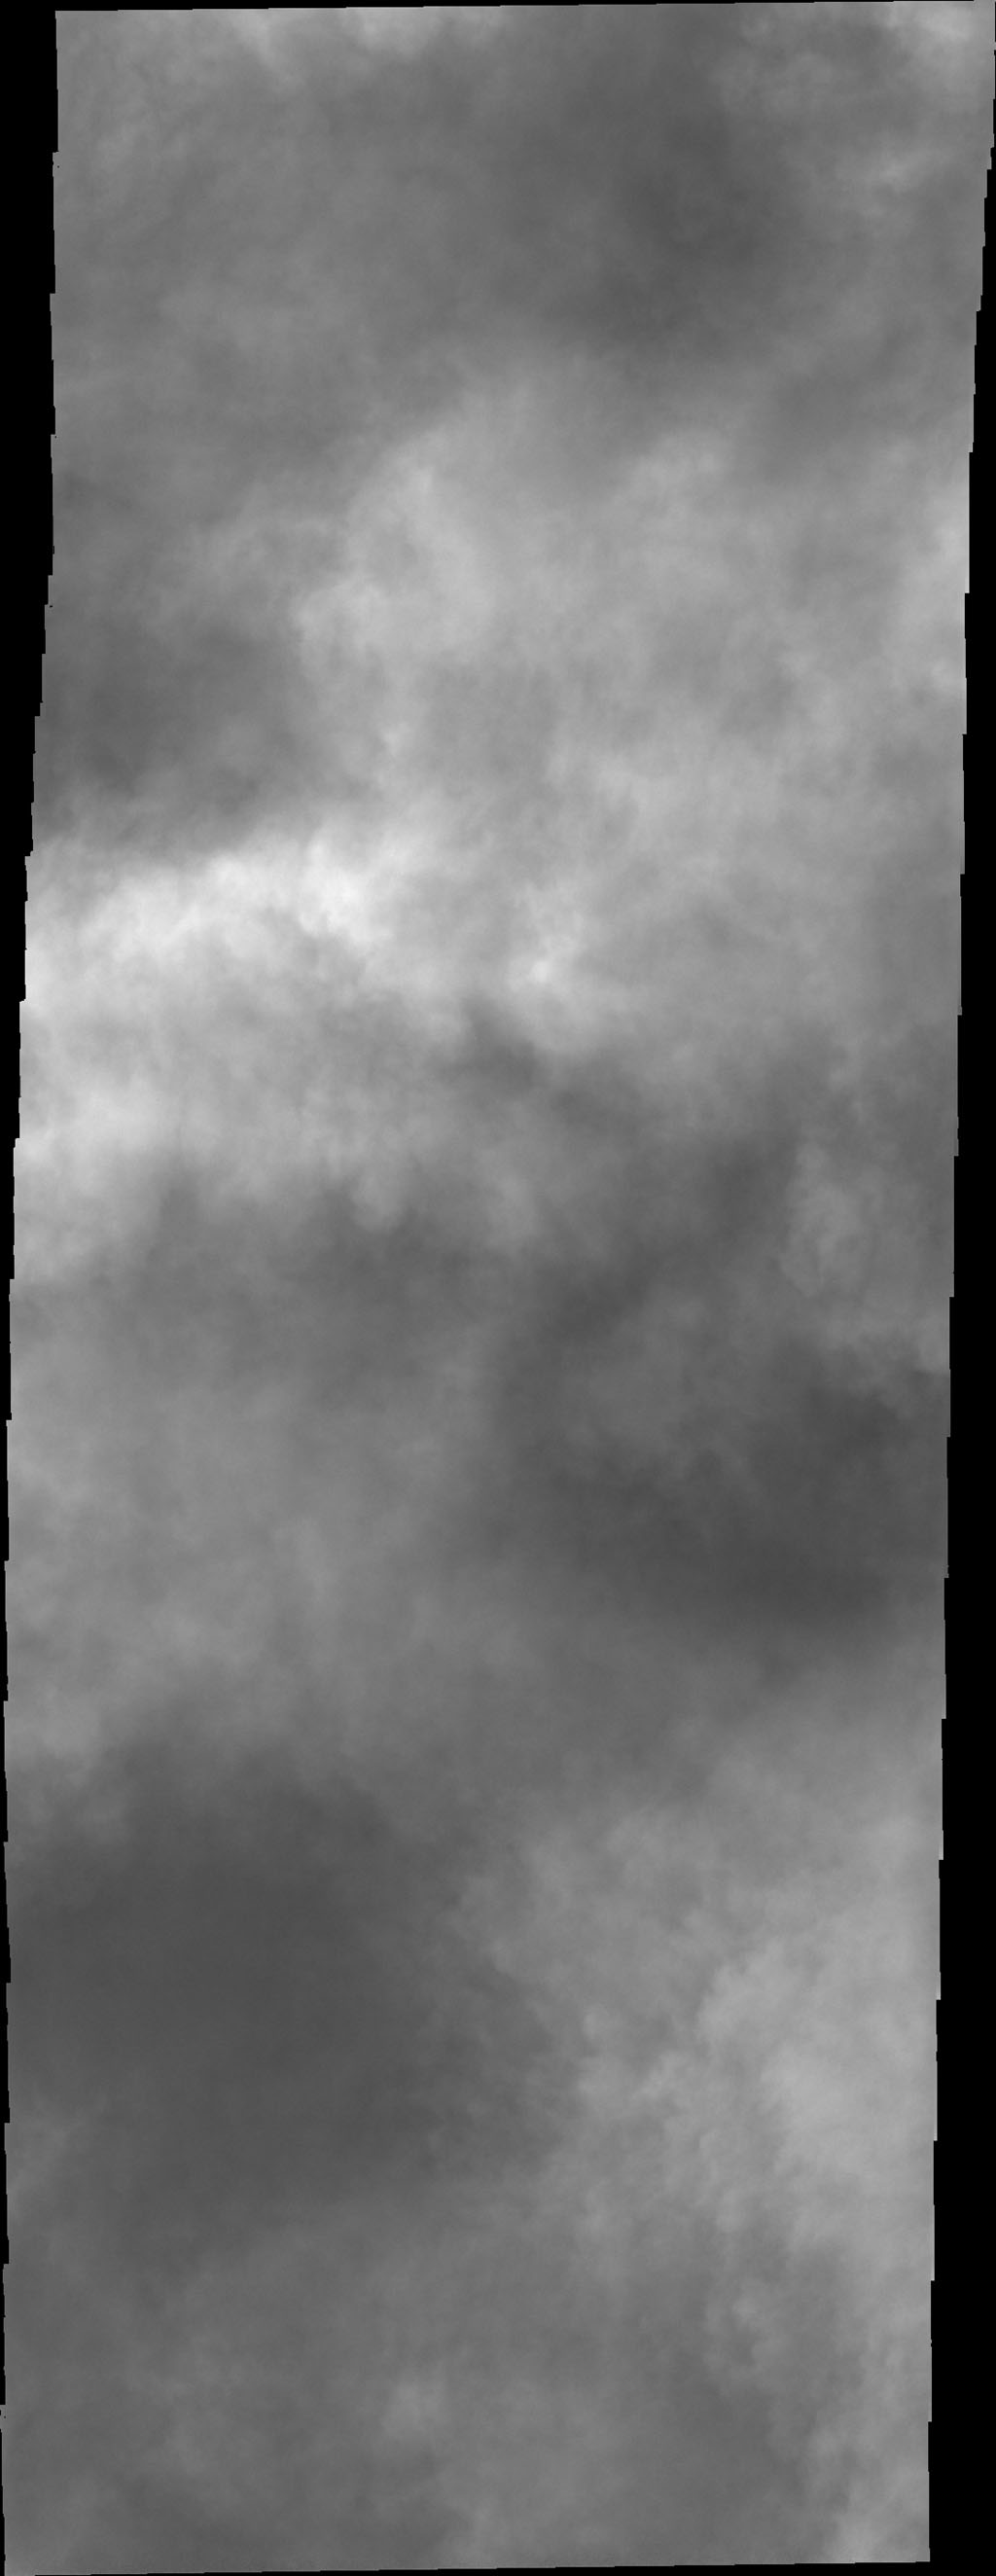 This image from NASA's 2001 Mars Odyssey spacecraft had been targeted on the dunes on the floor of Charlier Crater. Unfortunately, clouds are obscuring the view of the surface.